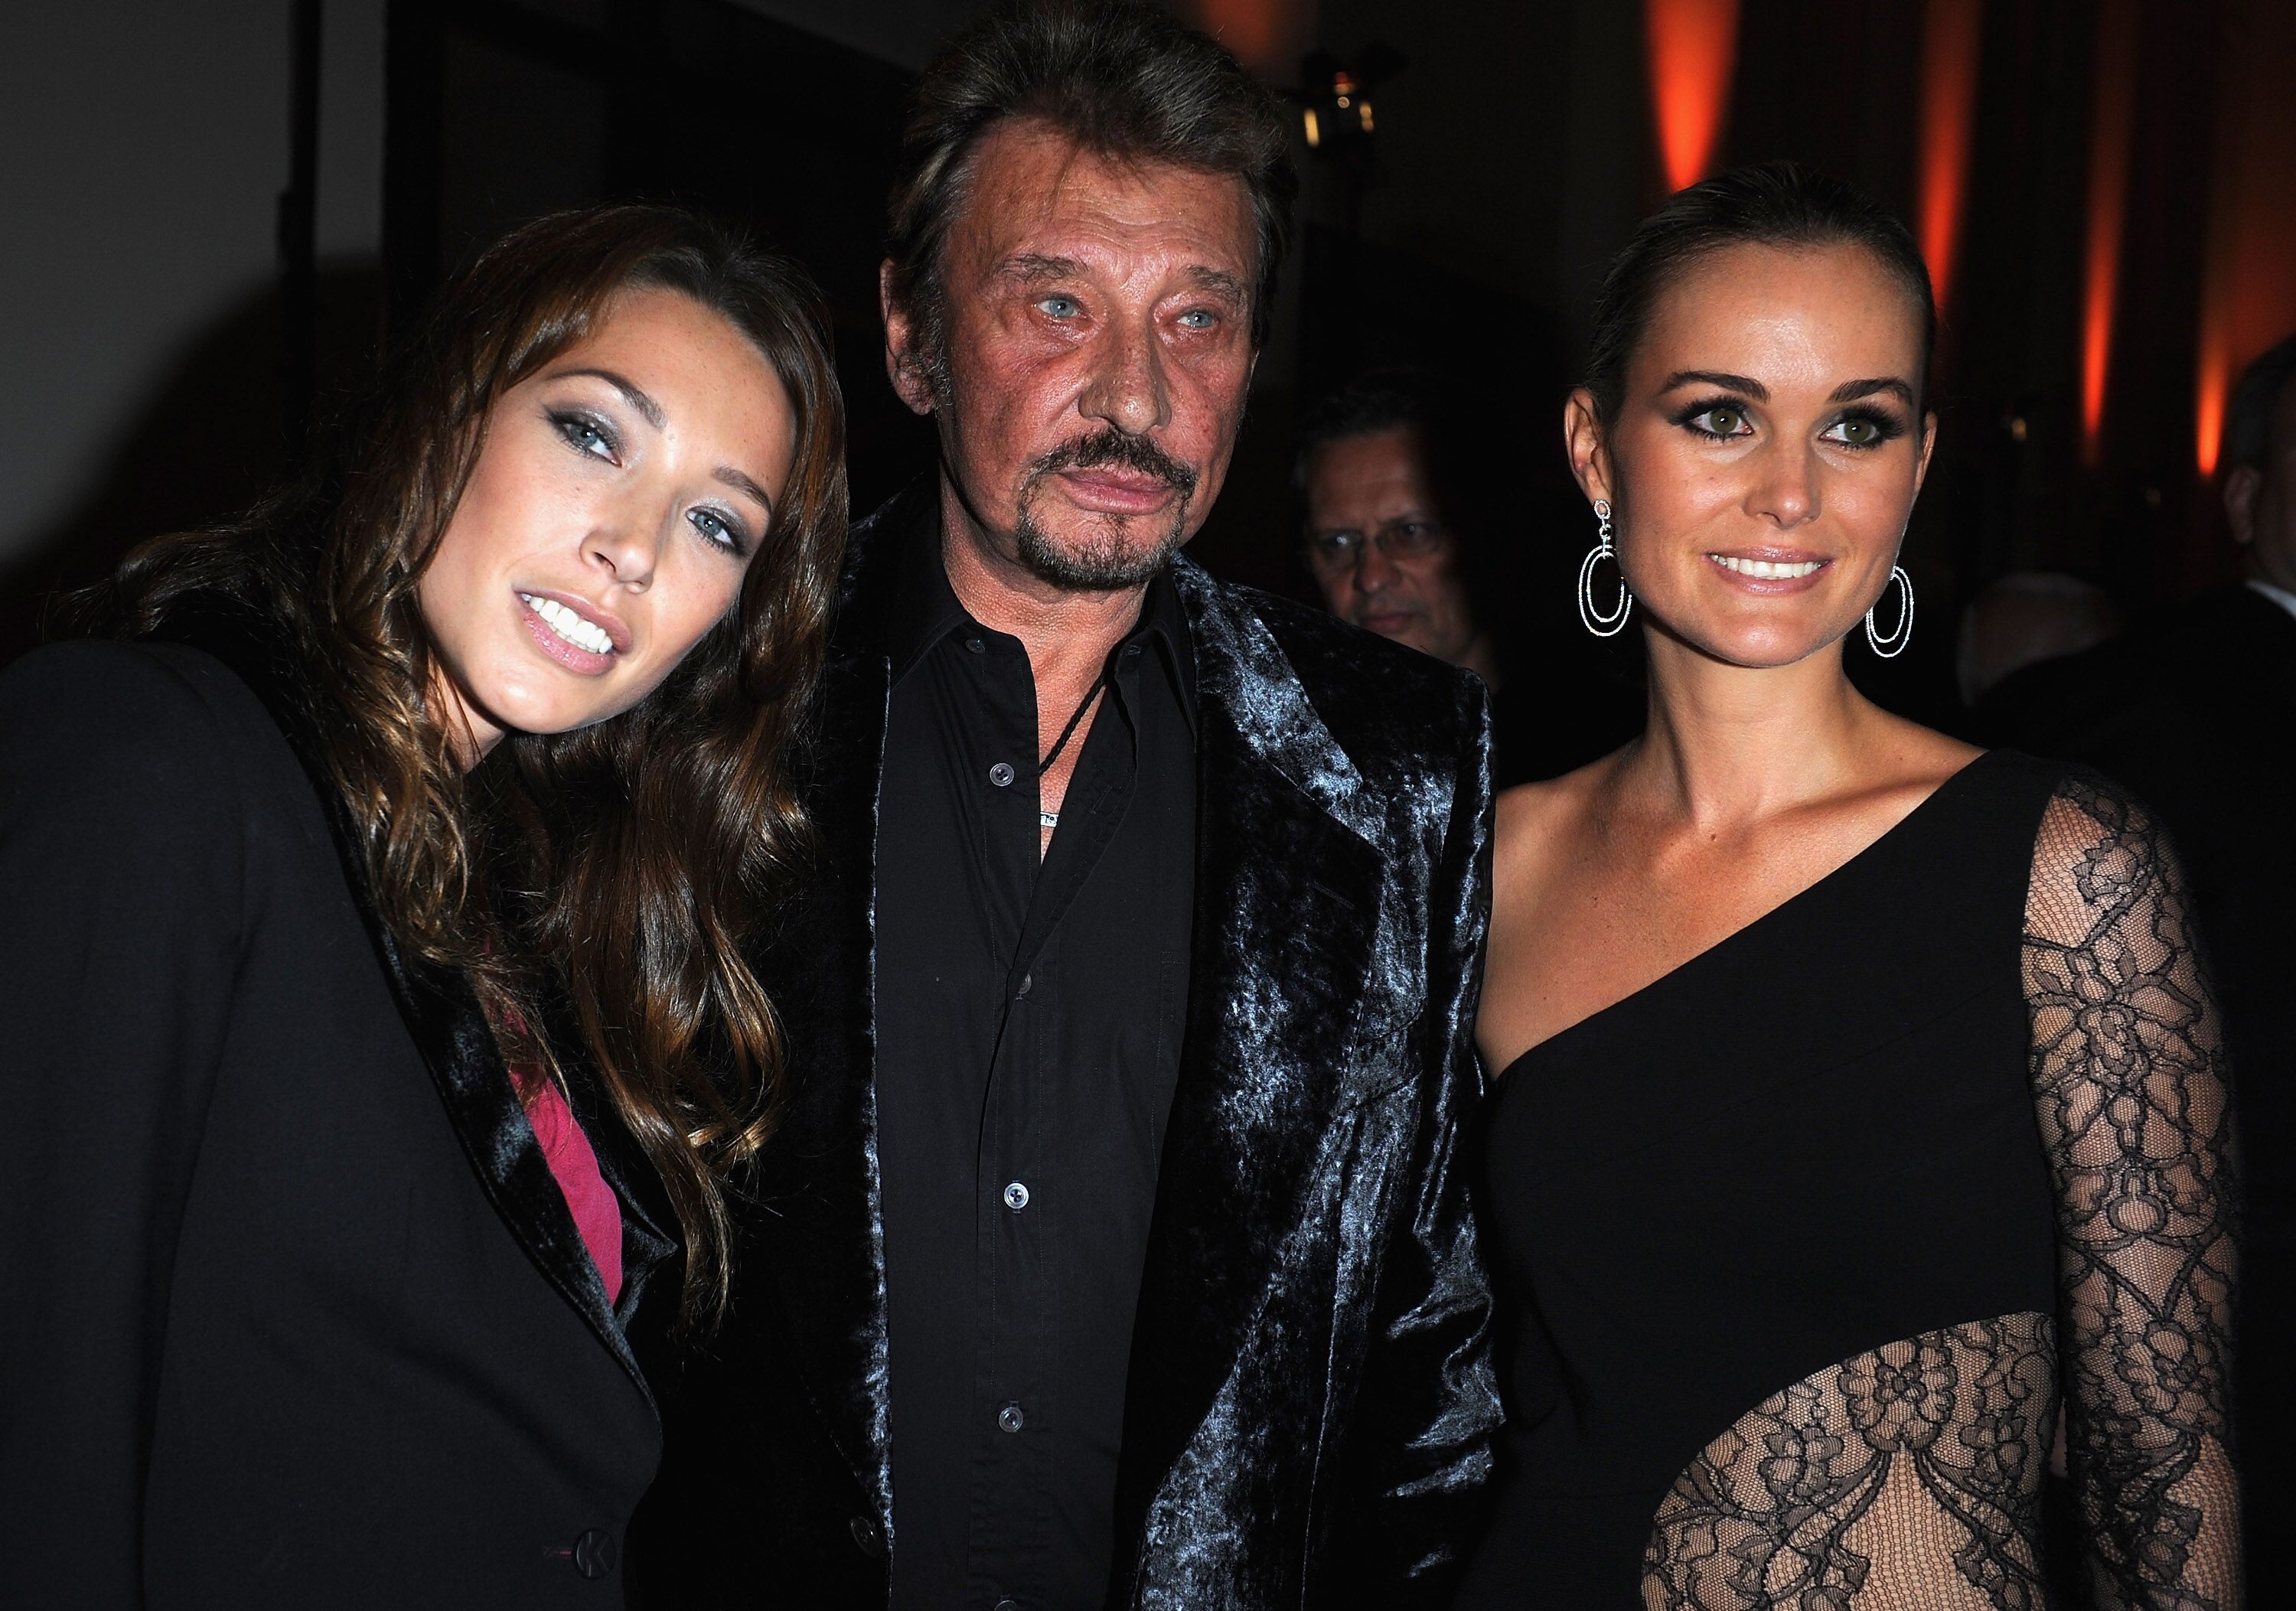 Laura Smet, Johnny Hallyday et Laetitia assistent à l'exposition Party de Patrick Demarchelier à Paris, France. | Photo : Getty Images